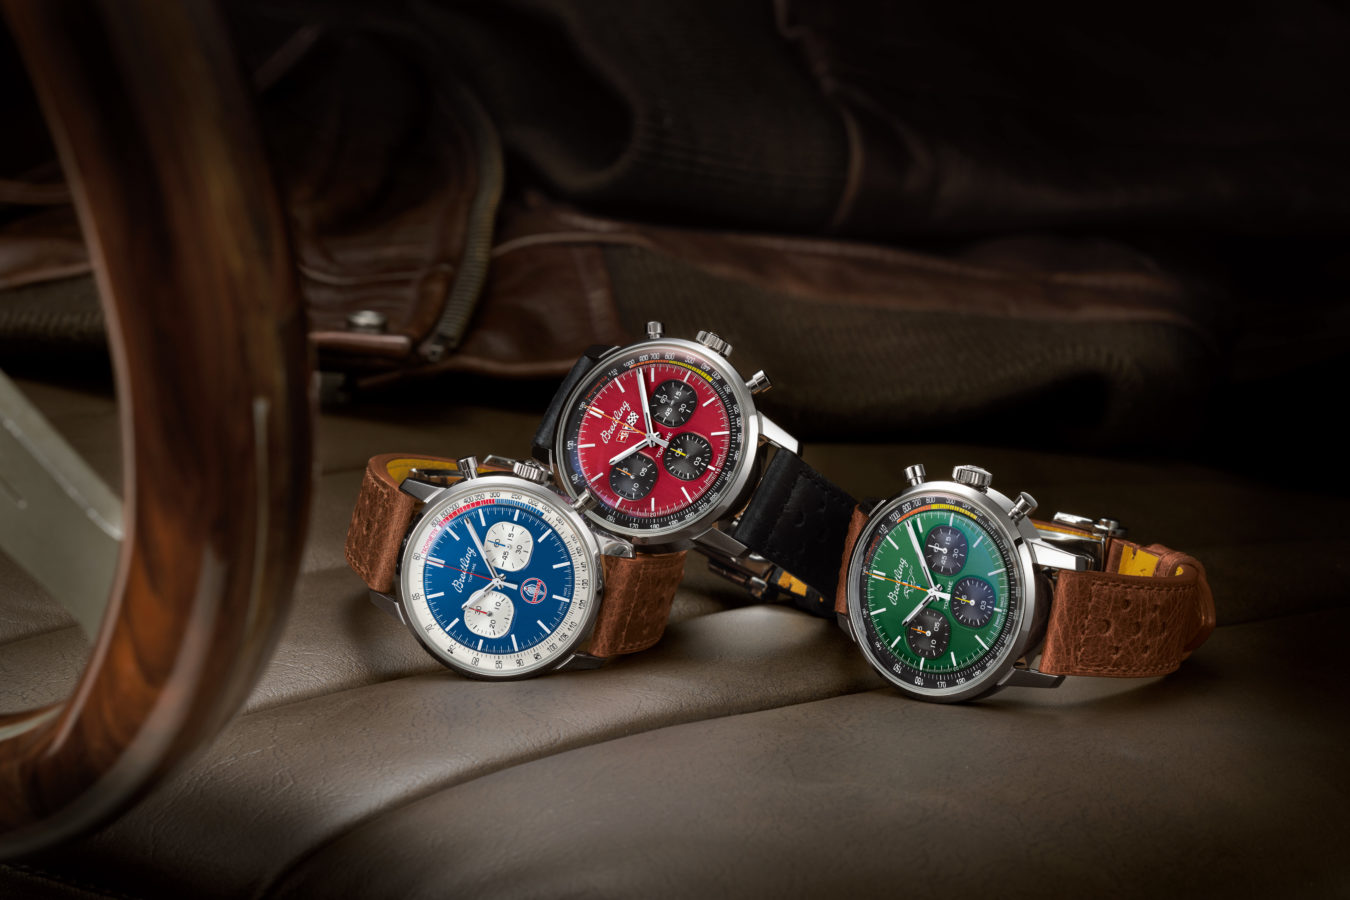 Breitling's Top Time Classic Cars Collection Celebrates American Car Icons